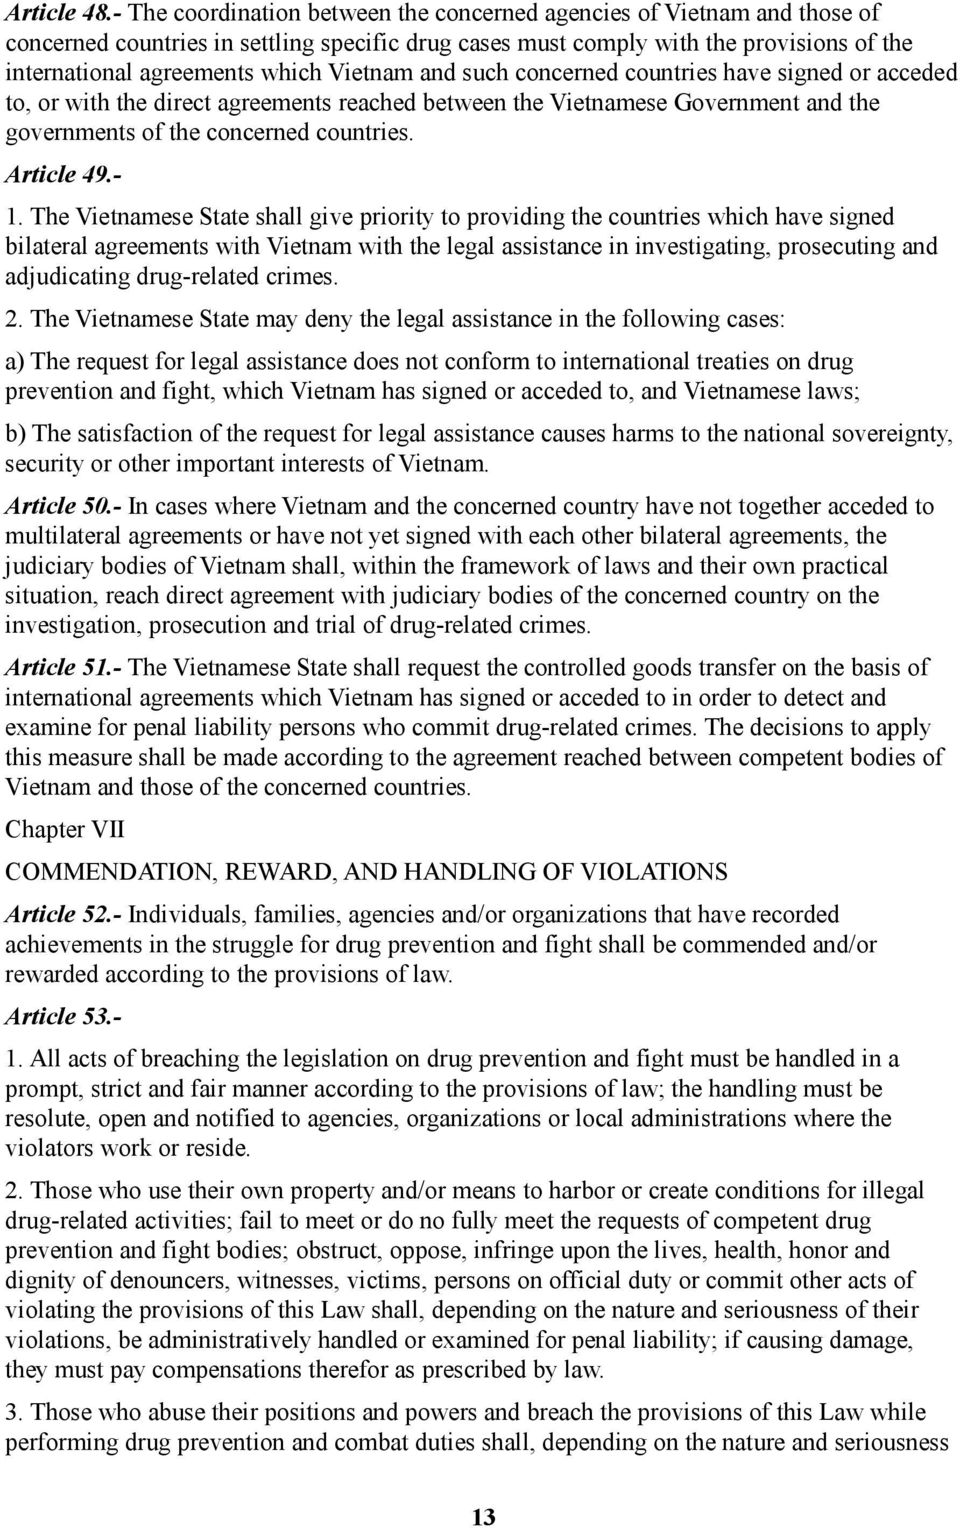 Vietnam and such concerned countries have signed or acceded to, or with the direct agreements reached between the Vietnamese Government and the governments of the concerned countries. Article 49.- 1.